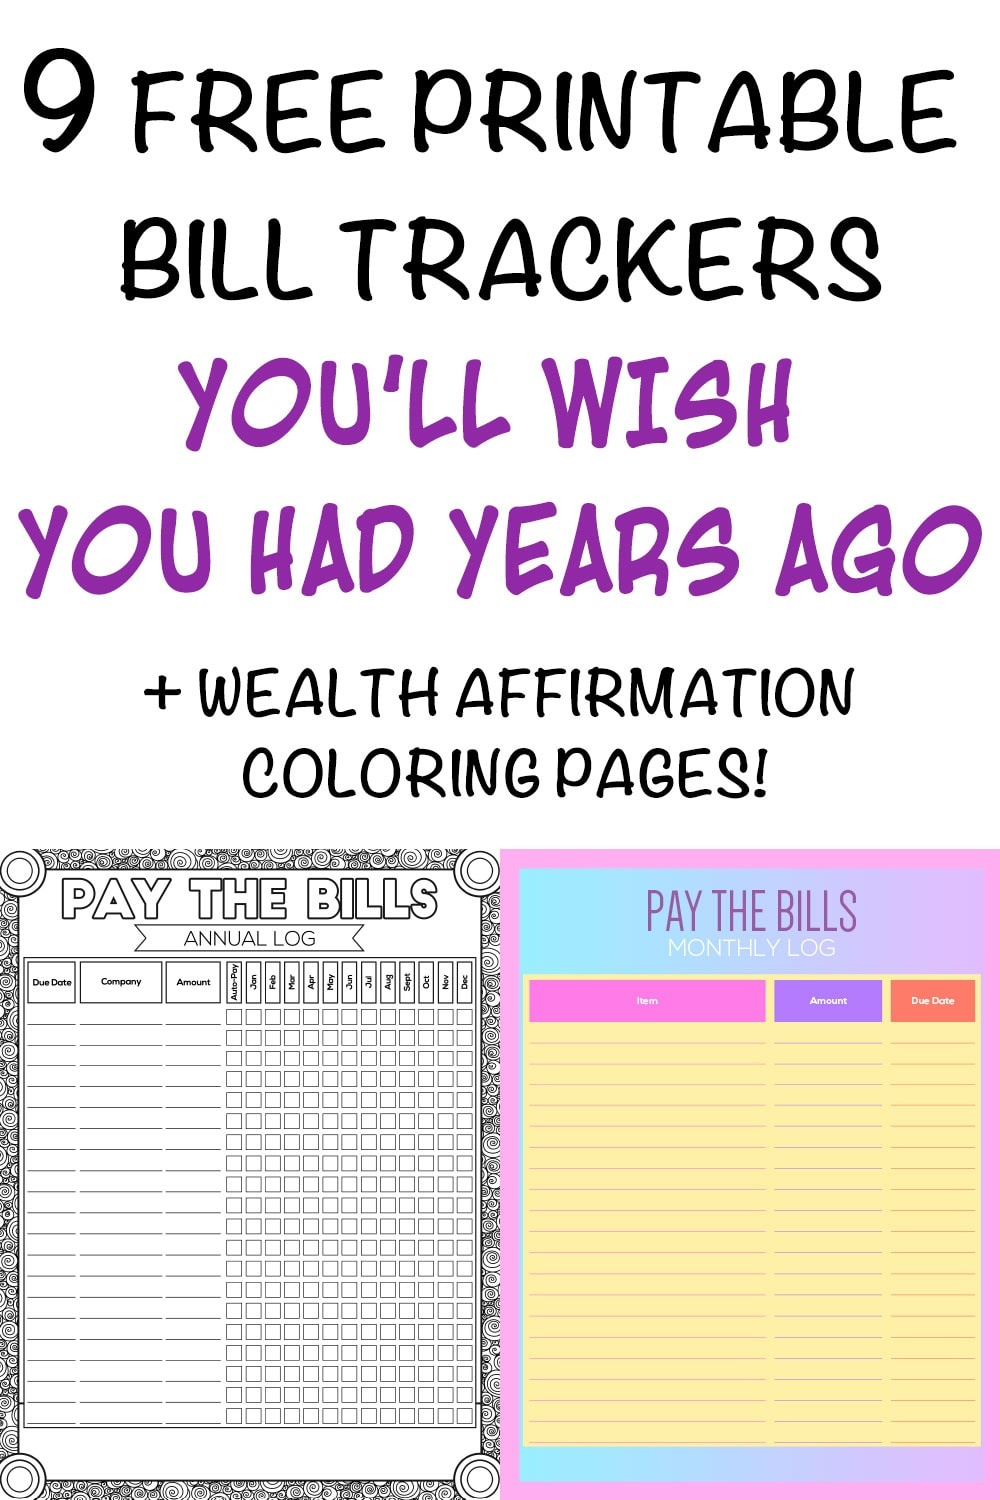 9 Printable Bill Payment Checklists And Bill Trackers - The Artisan Life - Free Printable Monthly Bill Checklist